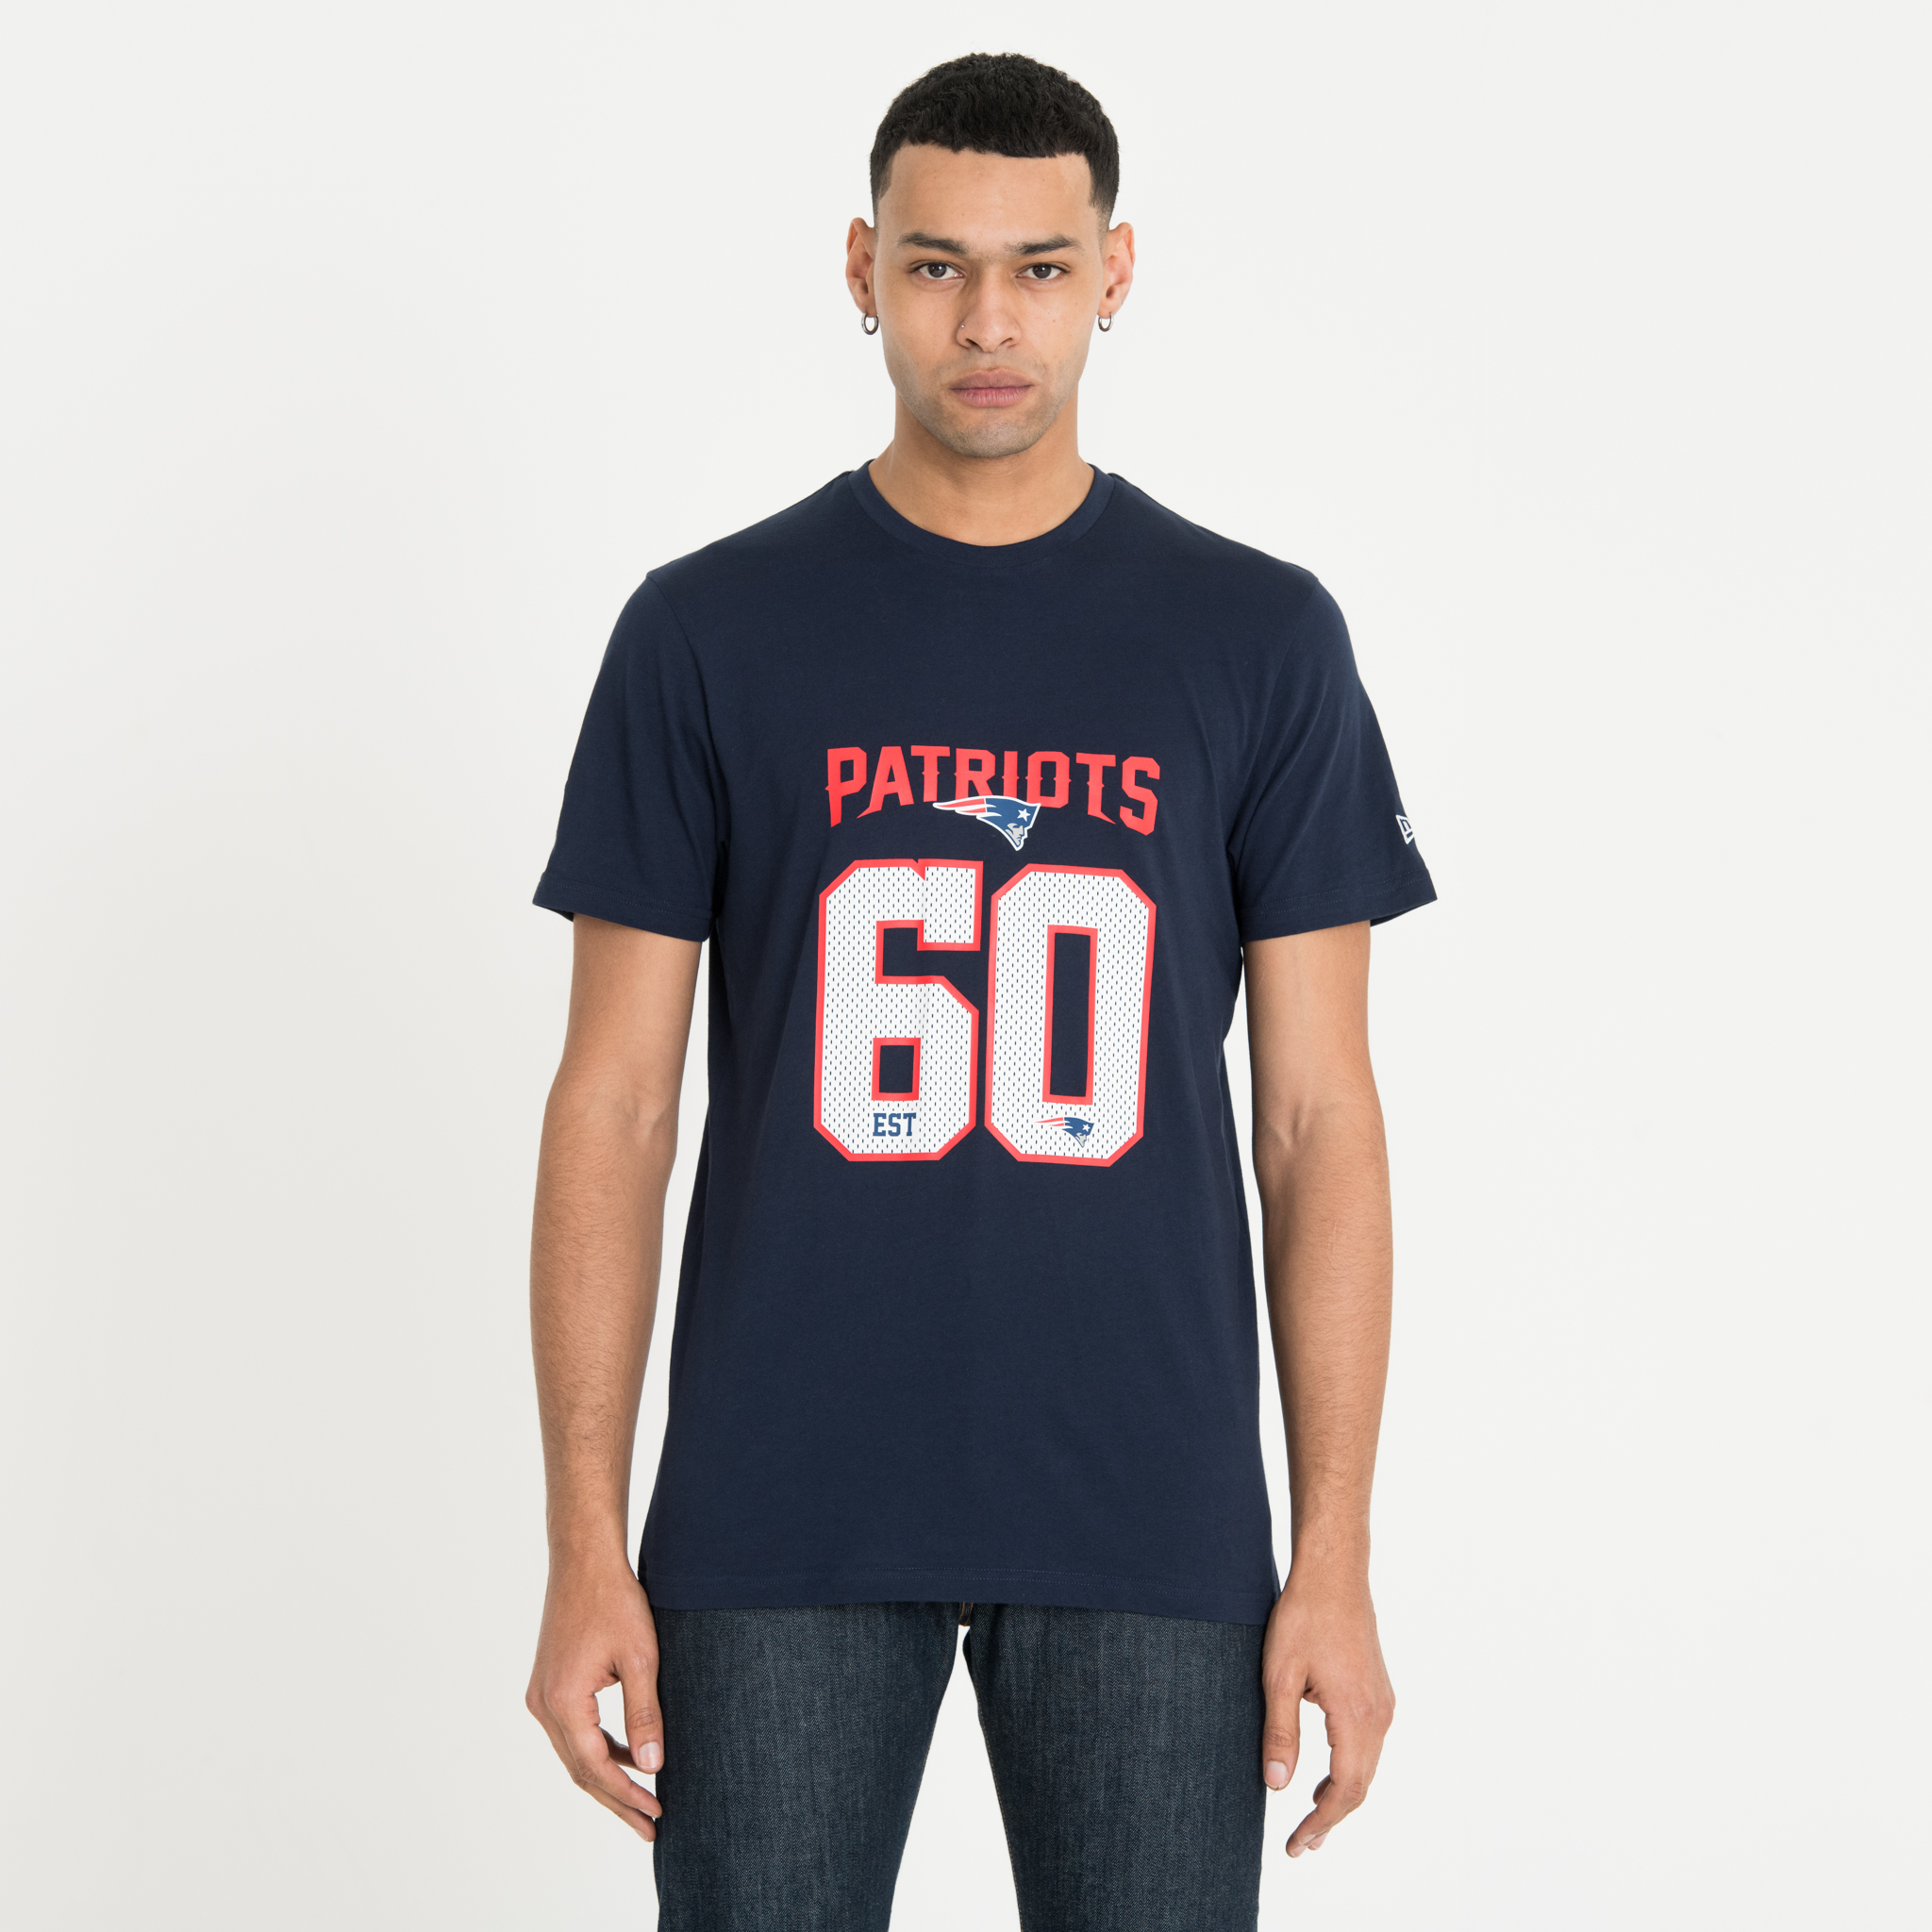 New England Patriots Supporters – T-Shirt